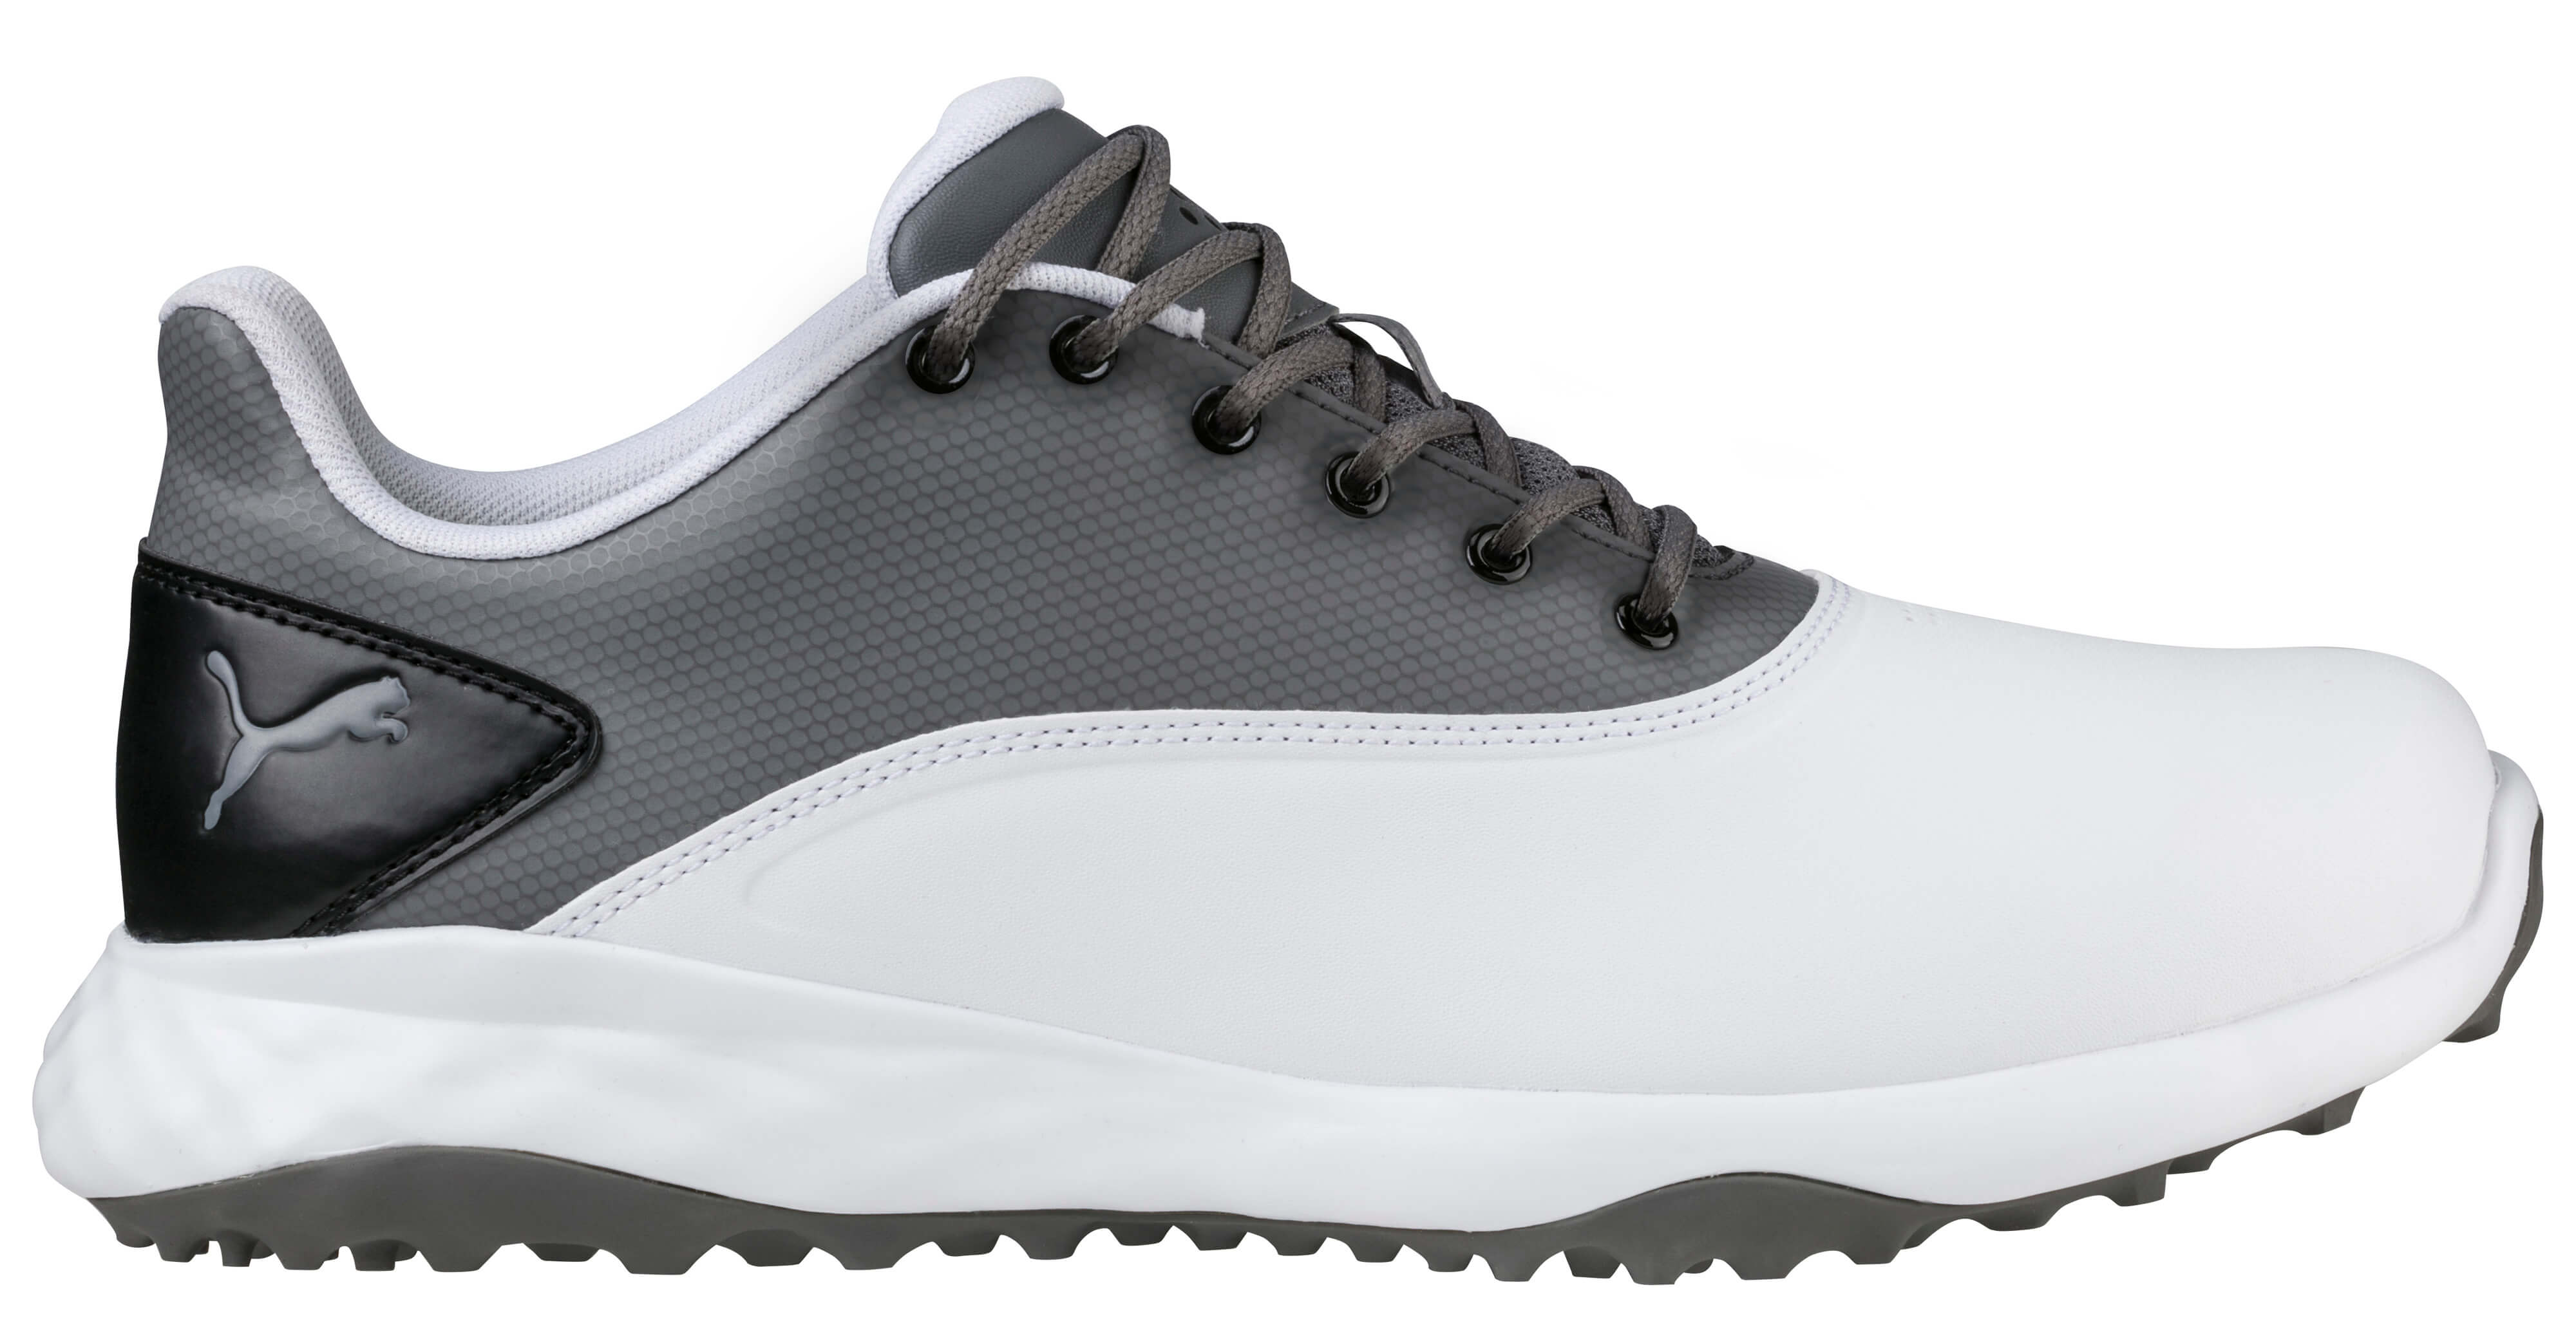 Details about Puma Grip Fusion Golf Shoes 2018 Men's Spikeless 189425 New Choose Color & Size